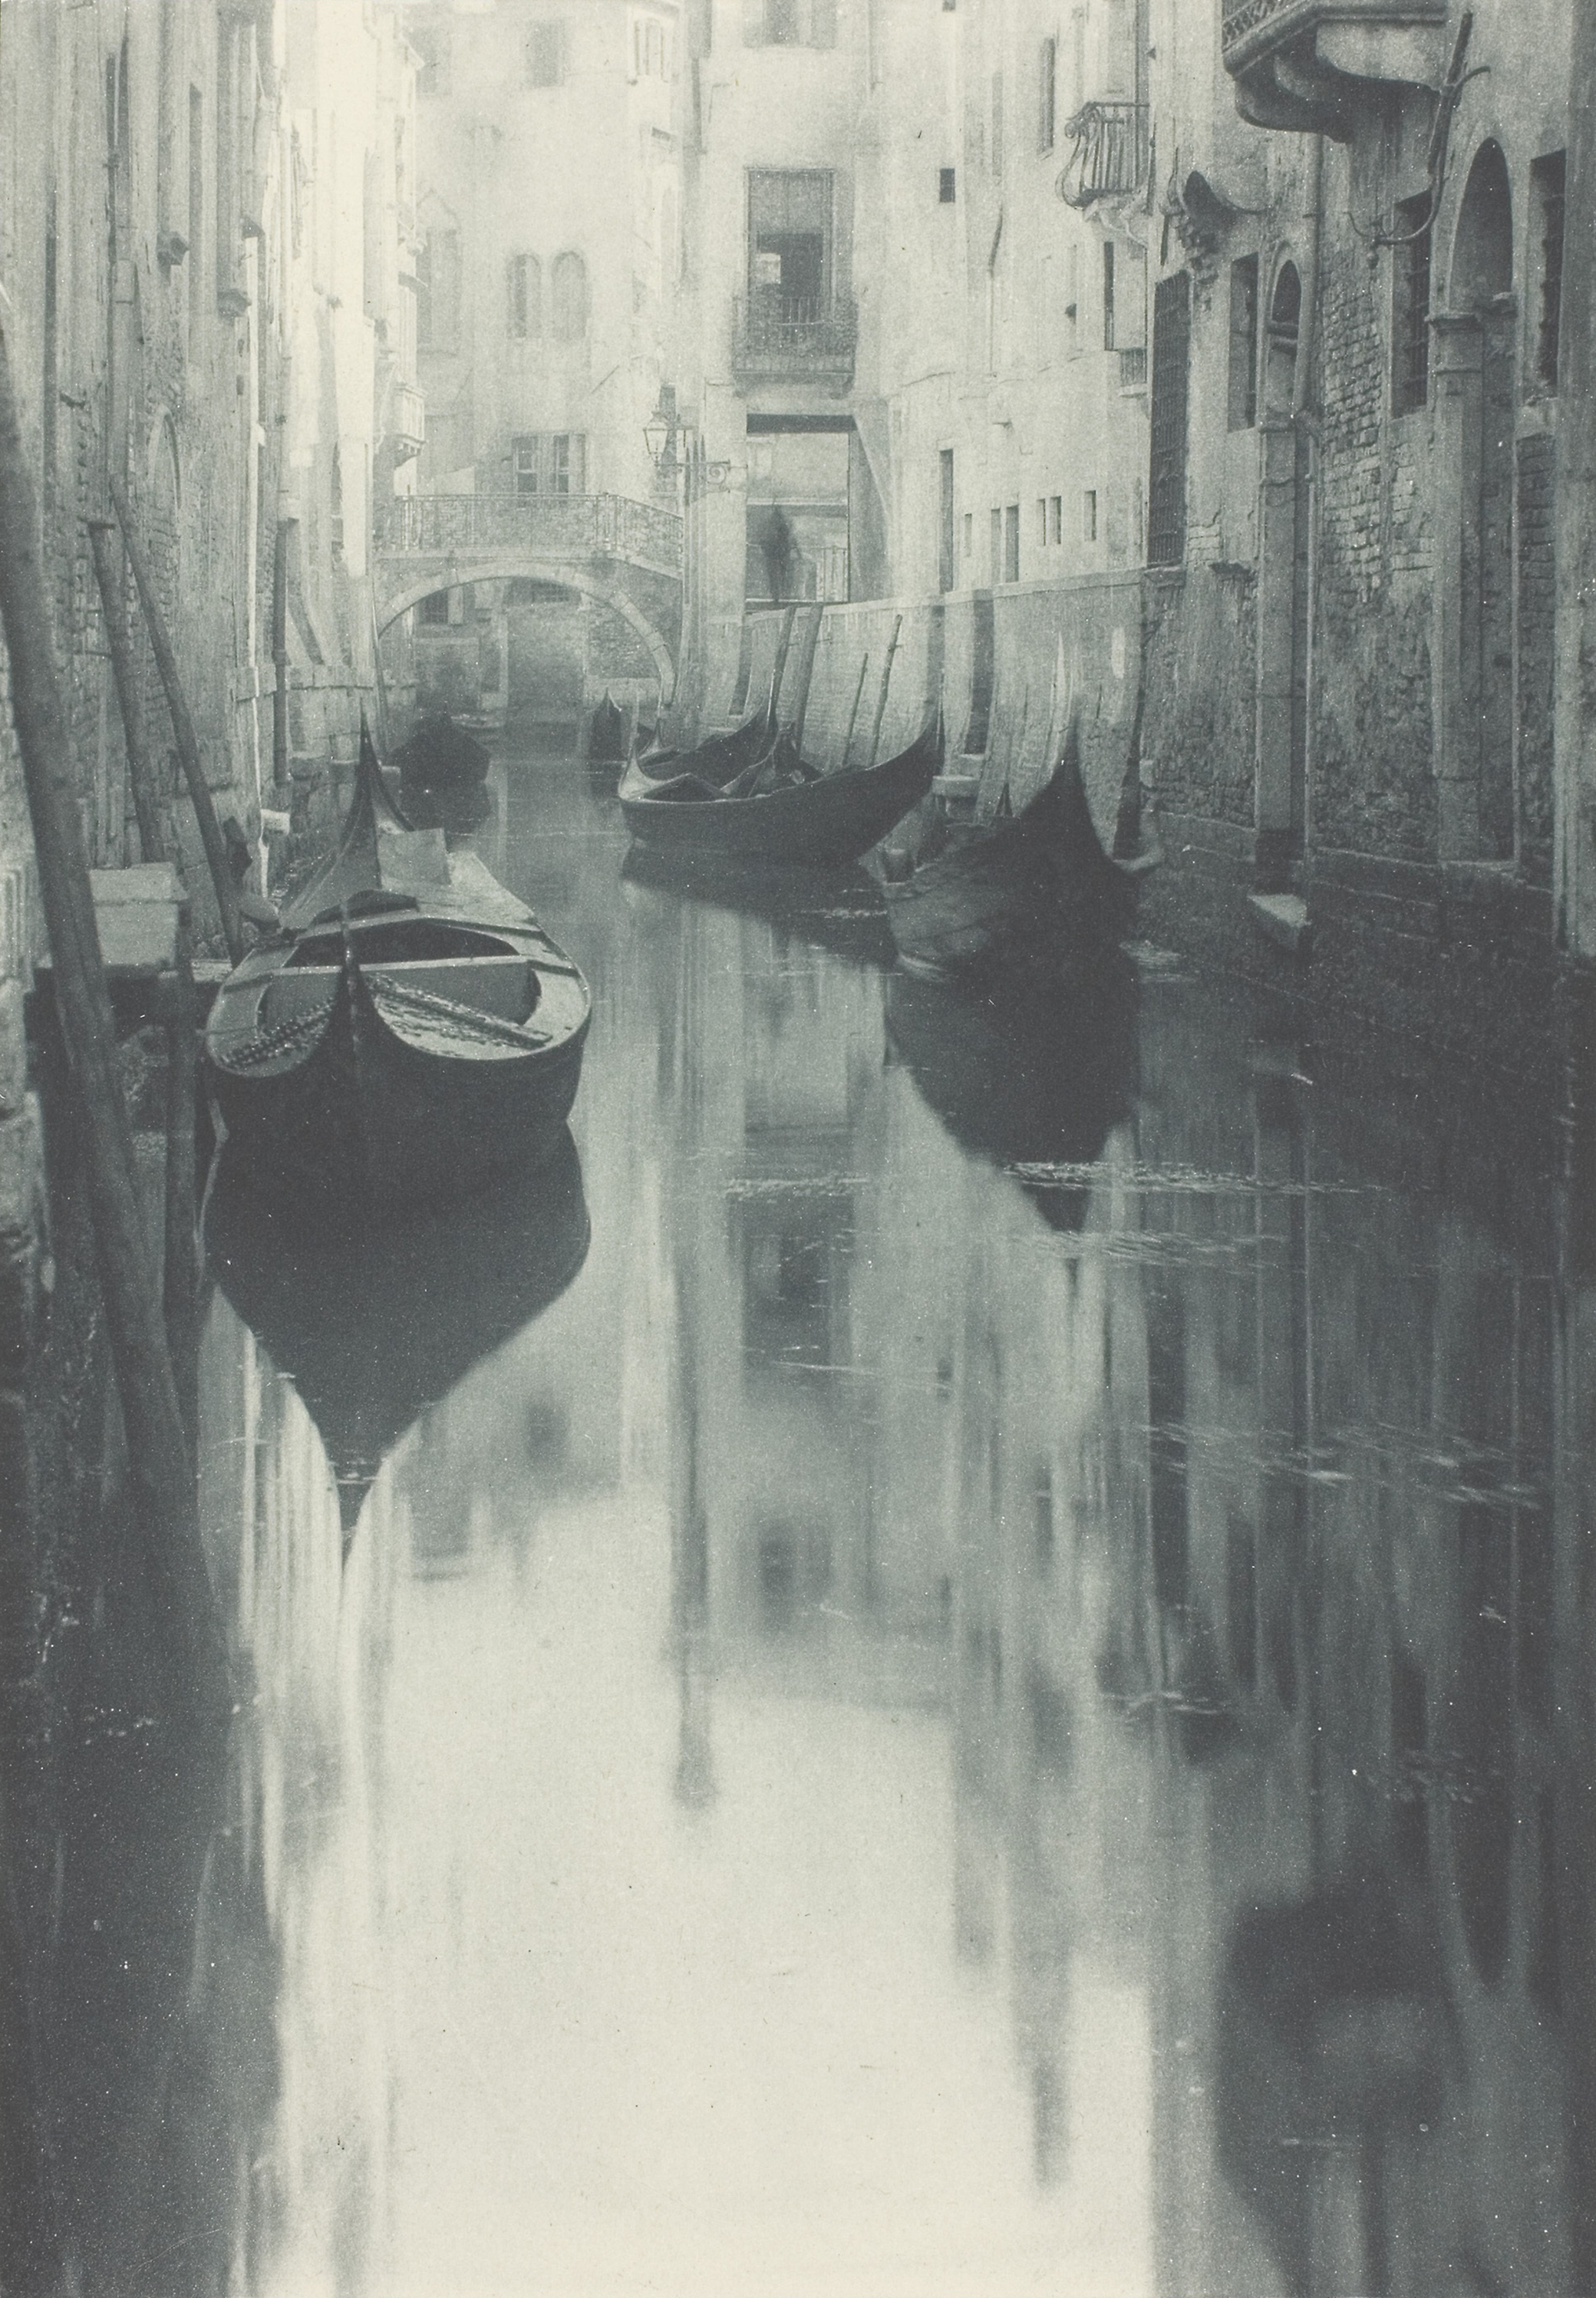 A photograph of empty boats on a Venice canal. In the canal you can see the reflection of the surrounding buildings and the boats.